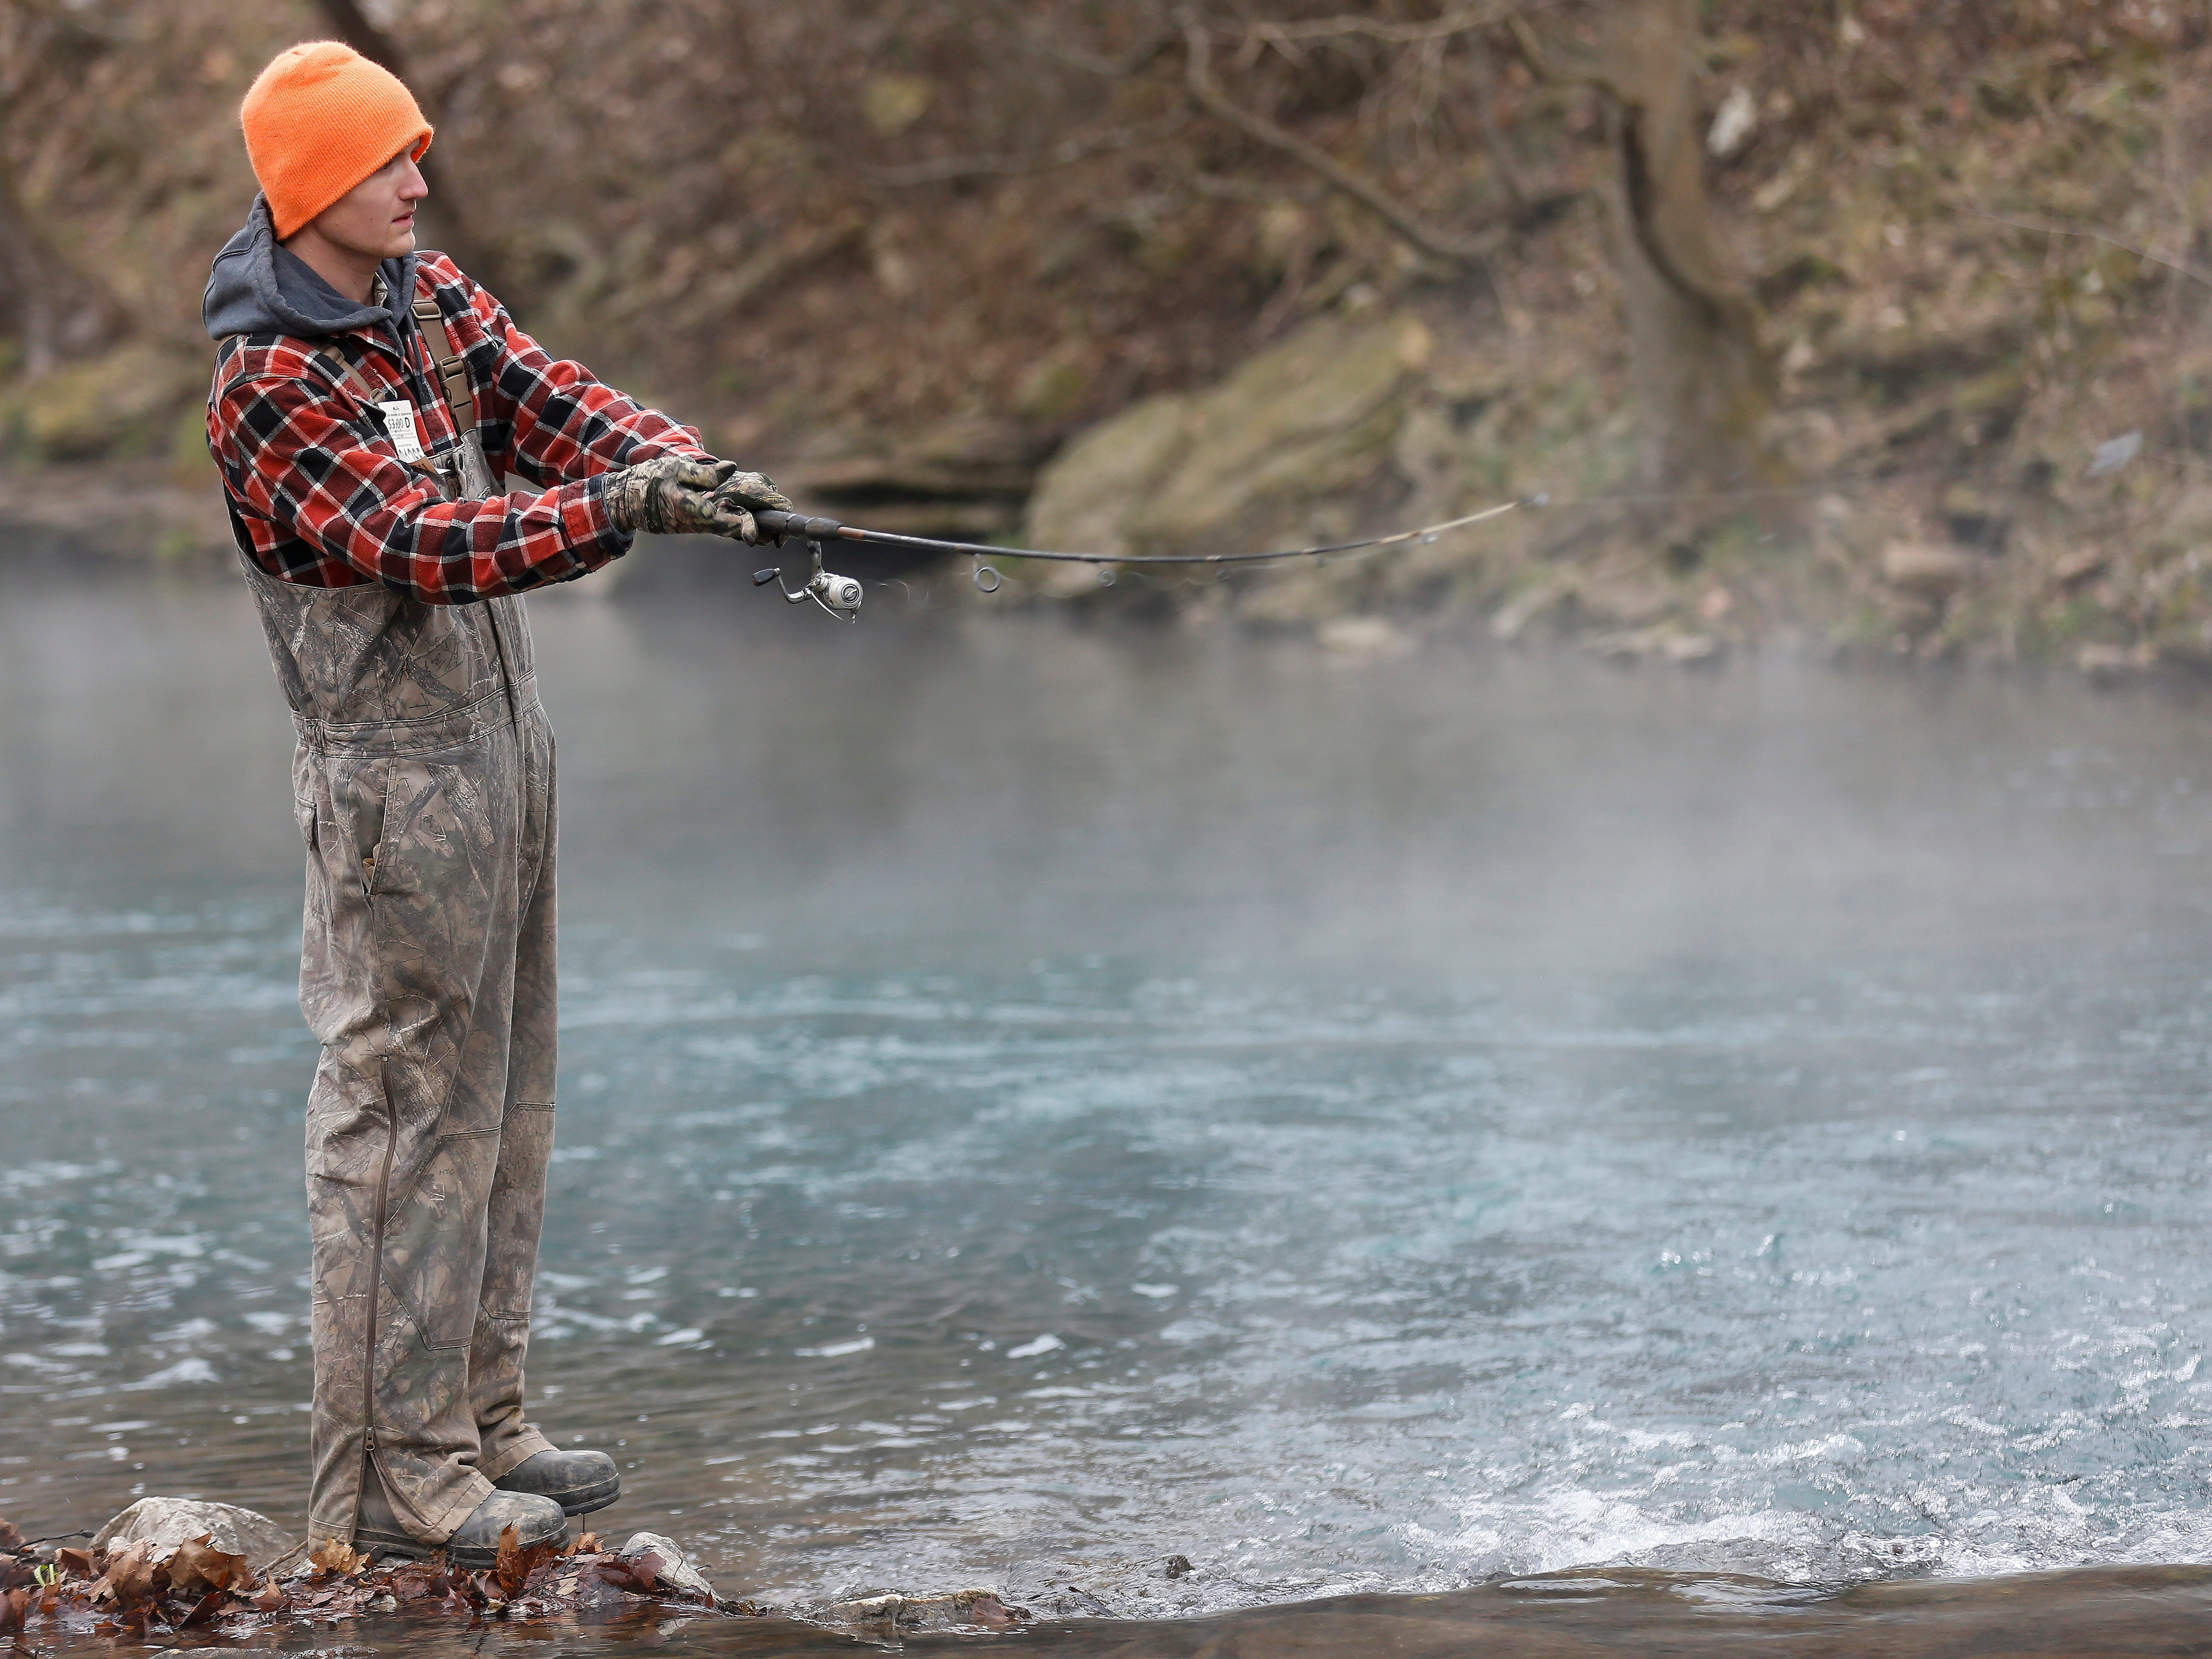 Henry Stupperich, of Diggins, MO., casts his line during opening day of trout season at Roaring River State Park on Friday, Mar. 1, 2019.